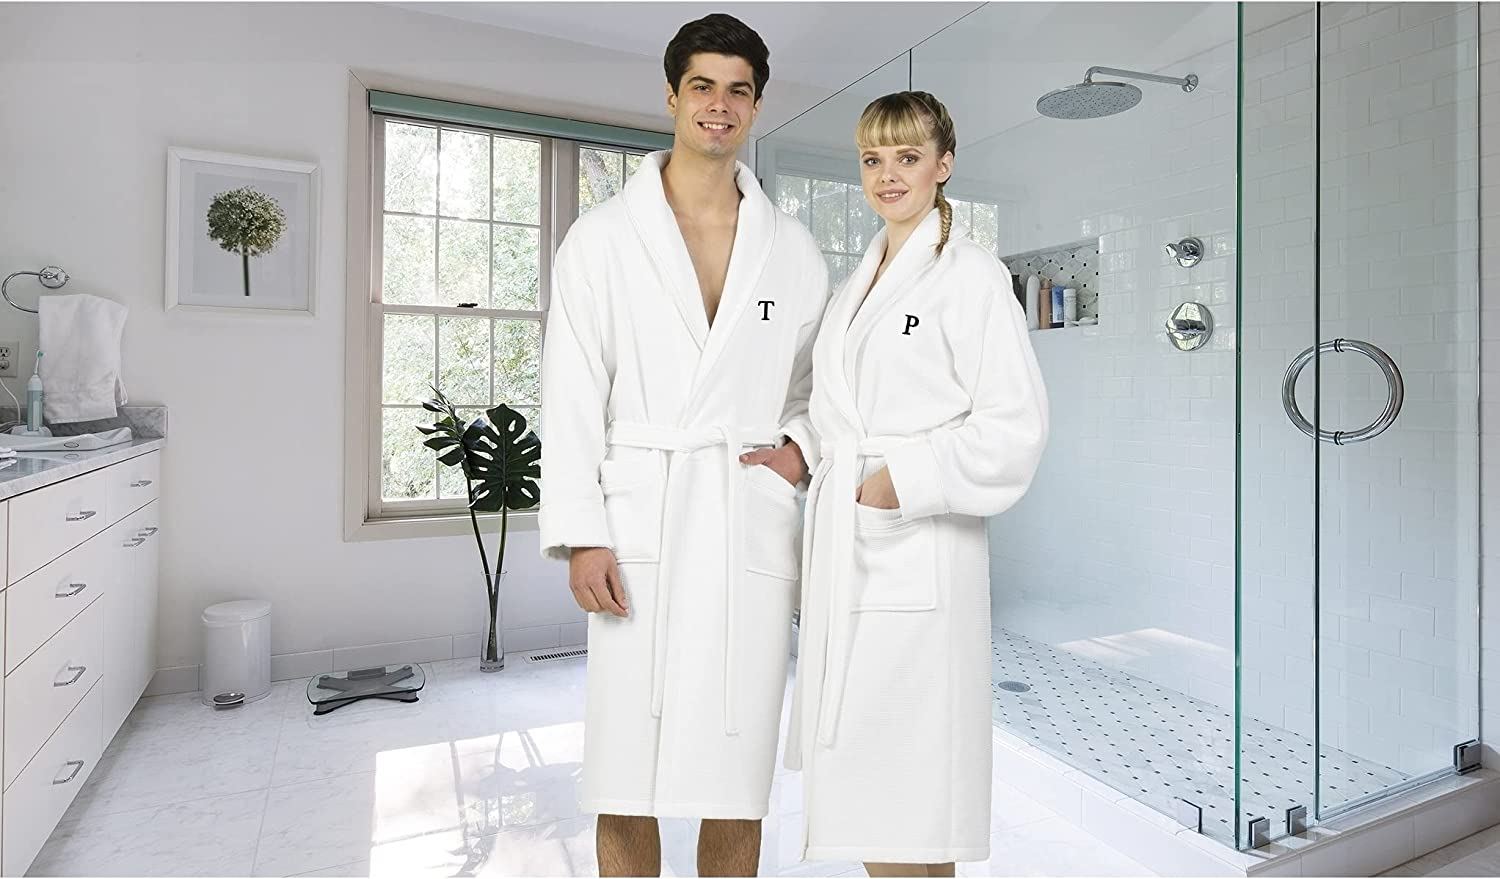 Authentic Hotel and Spa White Unisex Turkish Cotton Waffle Weave Terry Bath Robe with Black Block Monogram N L-XL